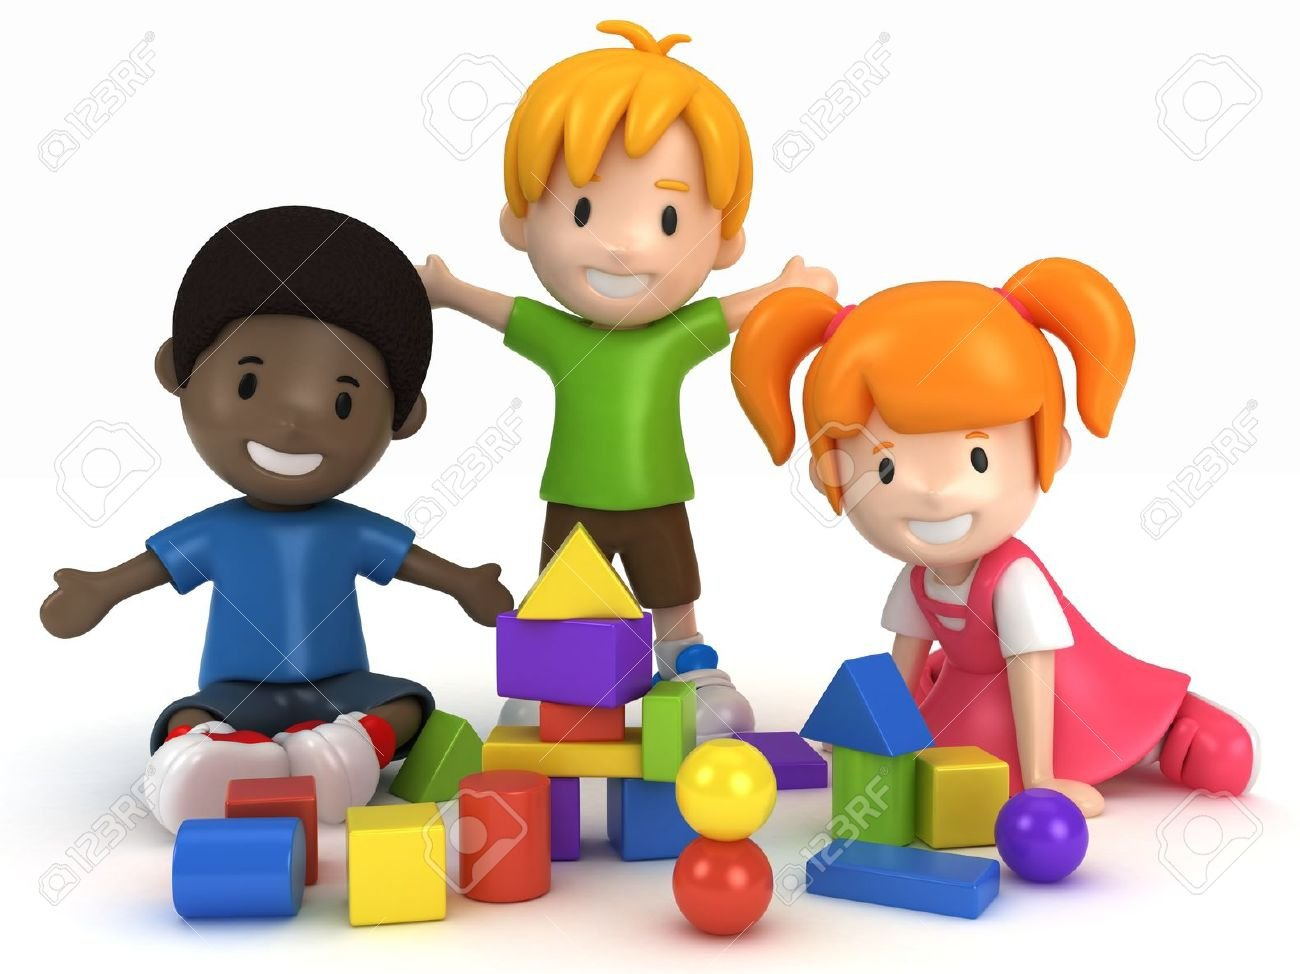 Child building with blocks clipart png black and white download Build blocks clipart - ClipartFest png black and white download